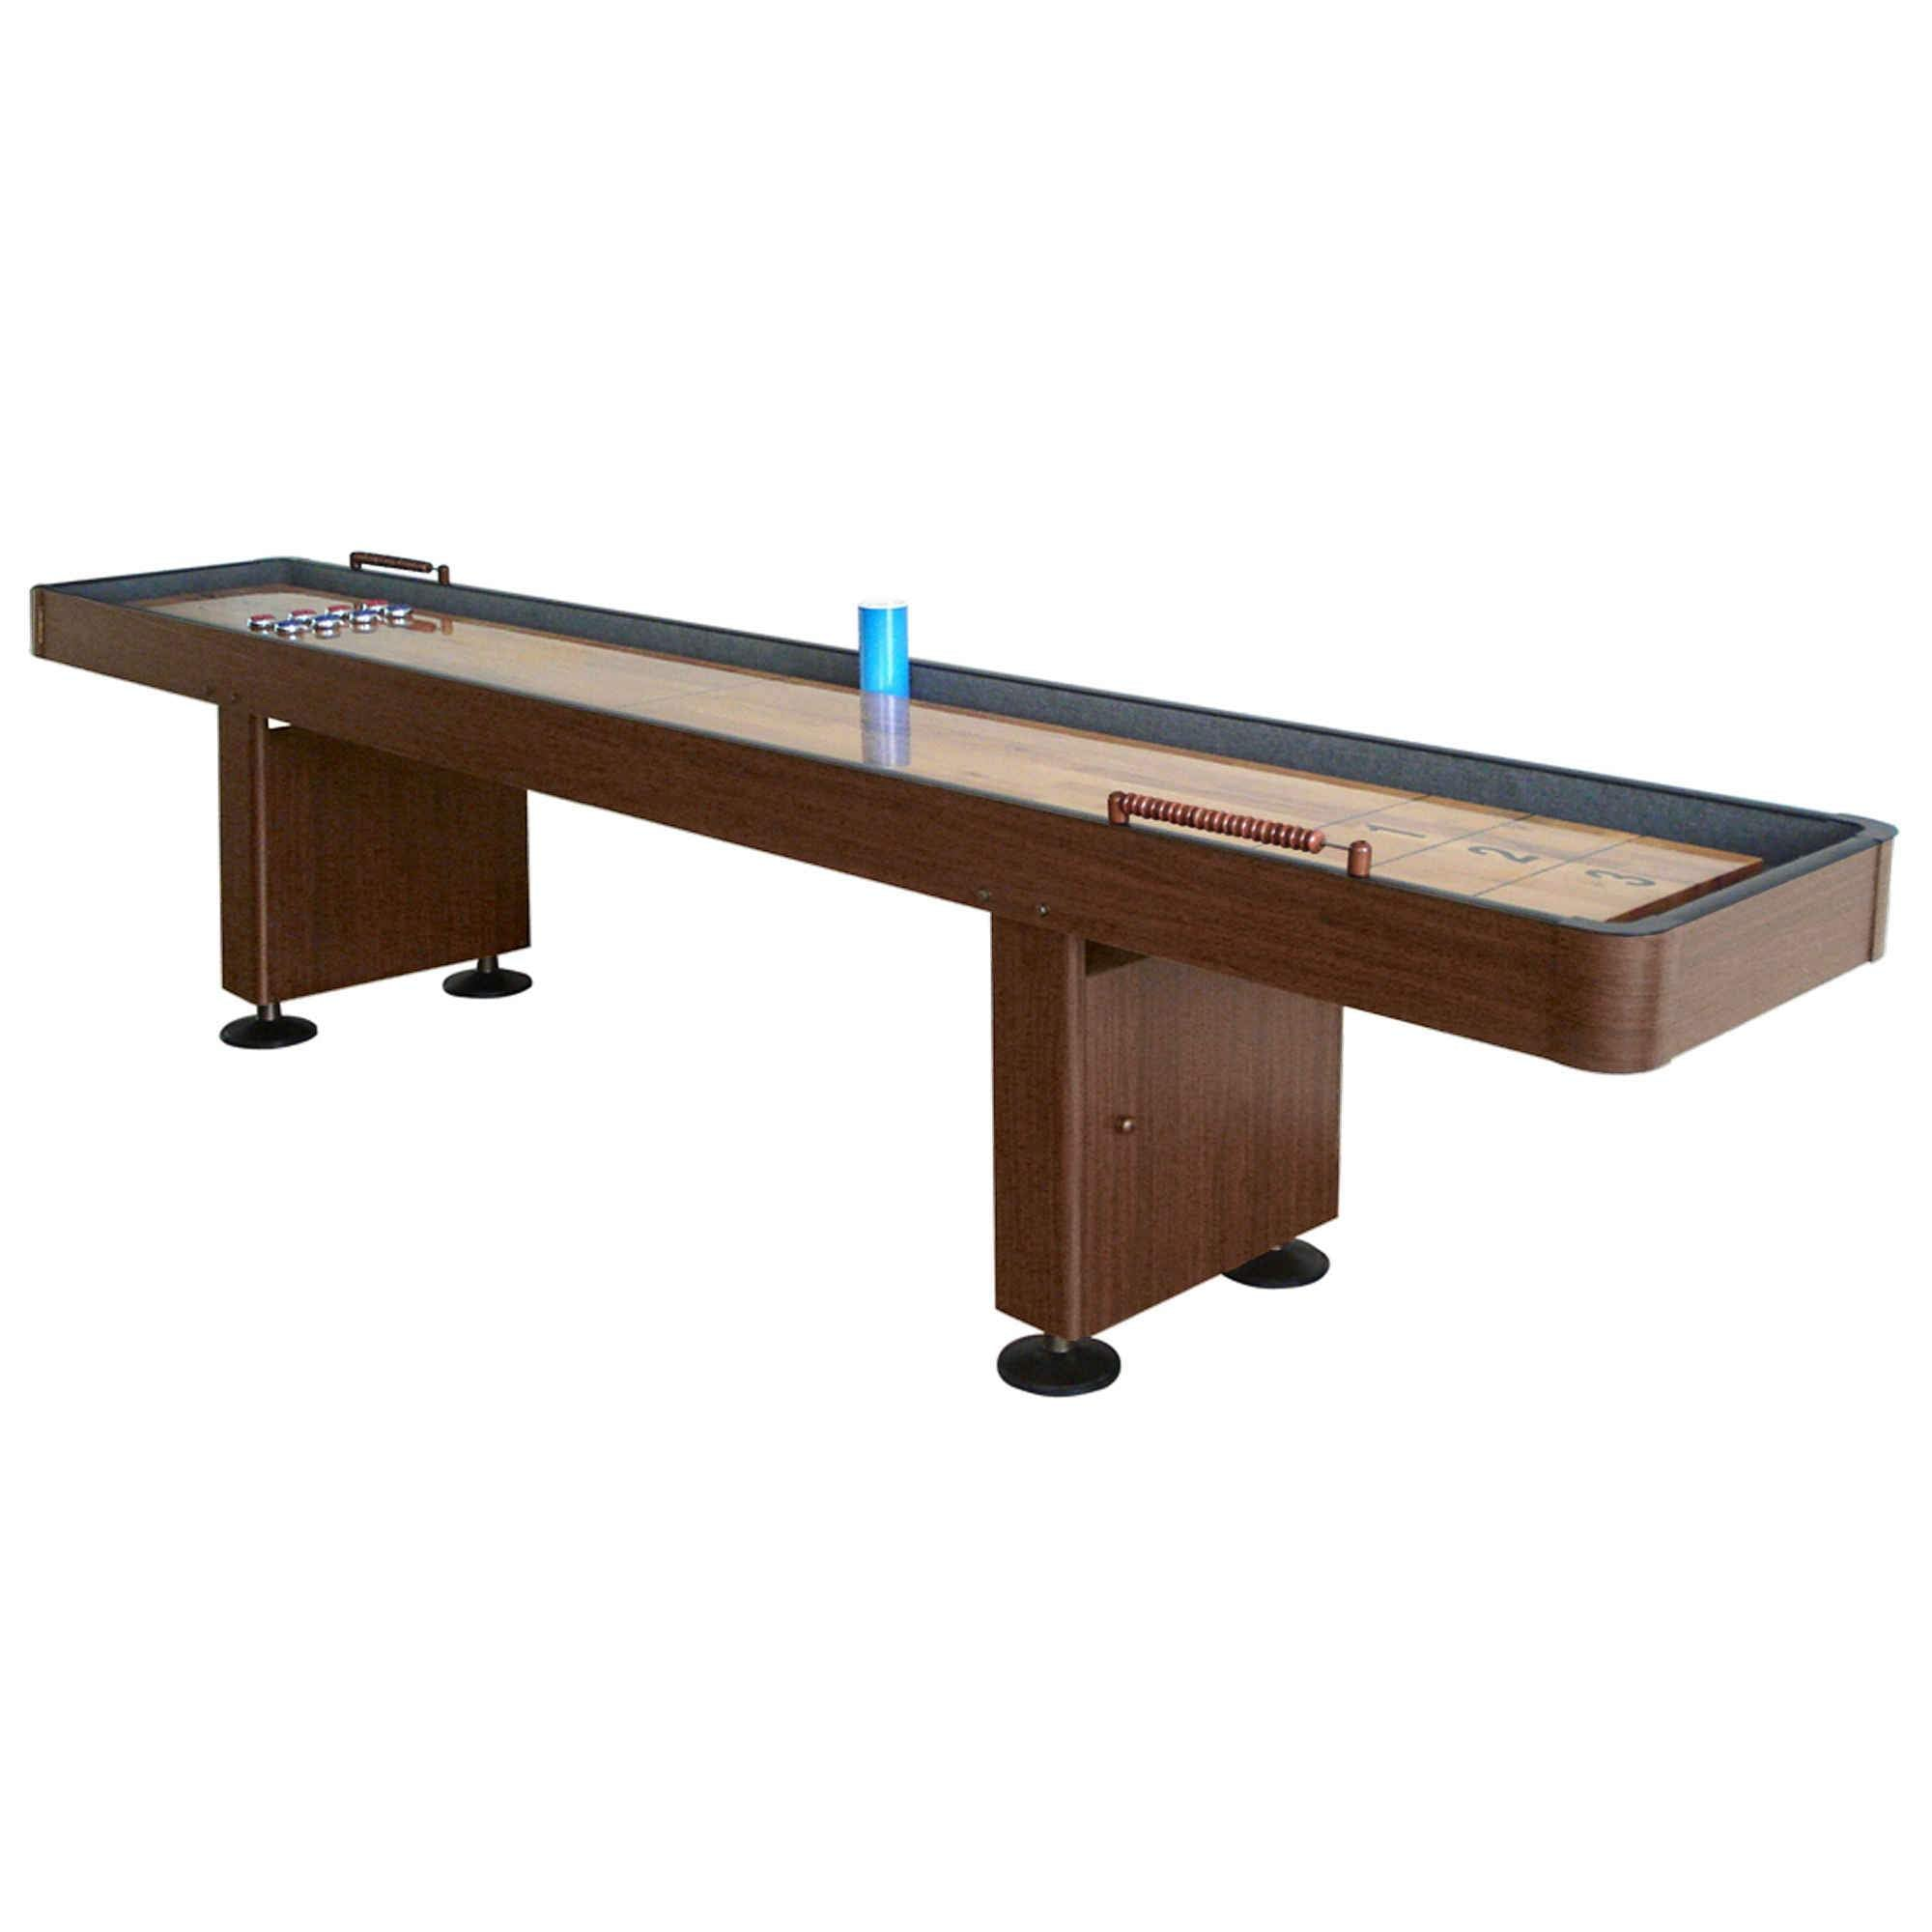 products for reno imperial foot rustic shuffleboard table sale